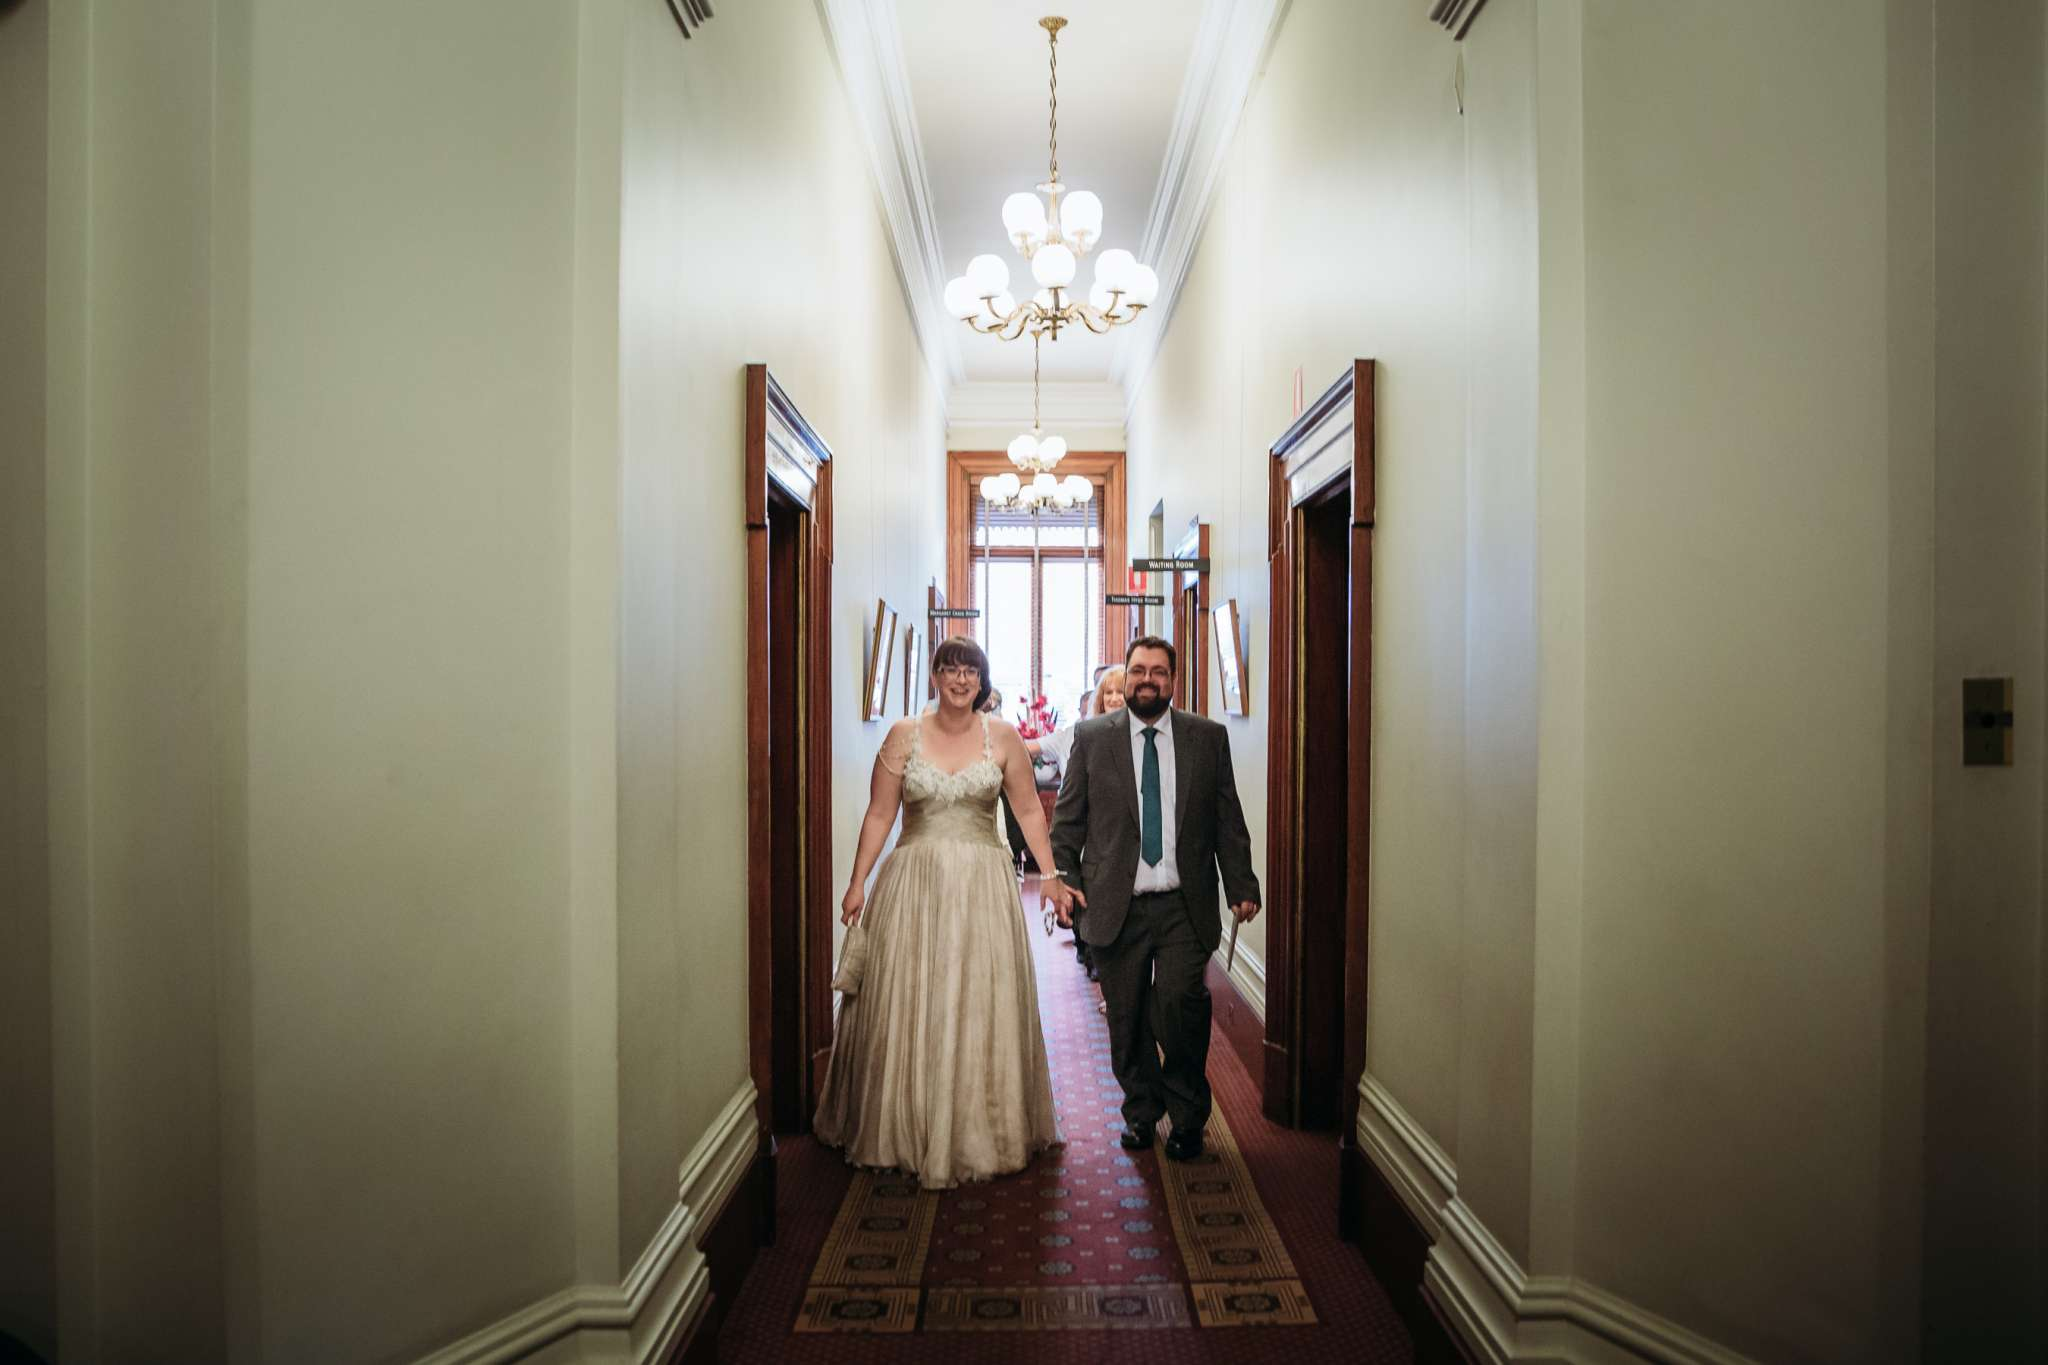 Wedding Photography Melbourne - Ange & Adam 098